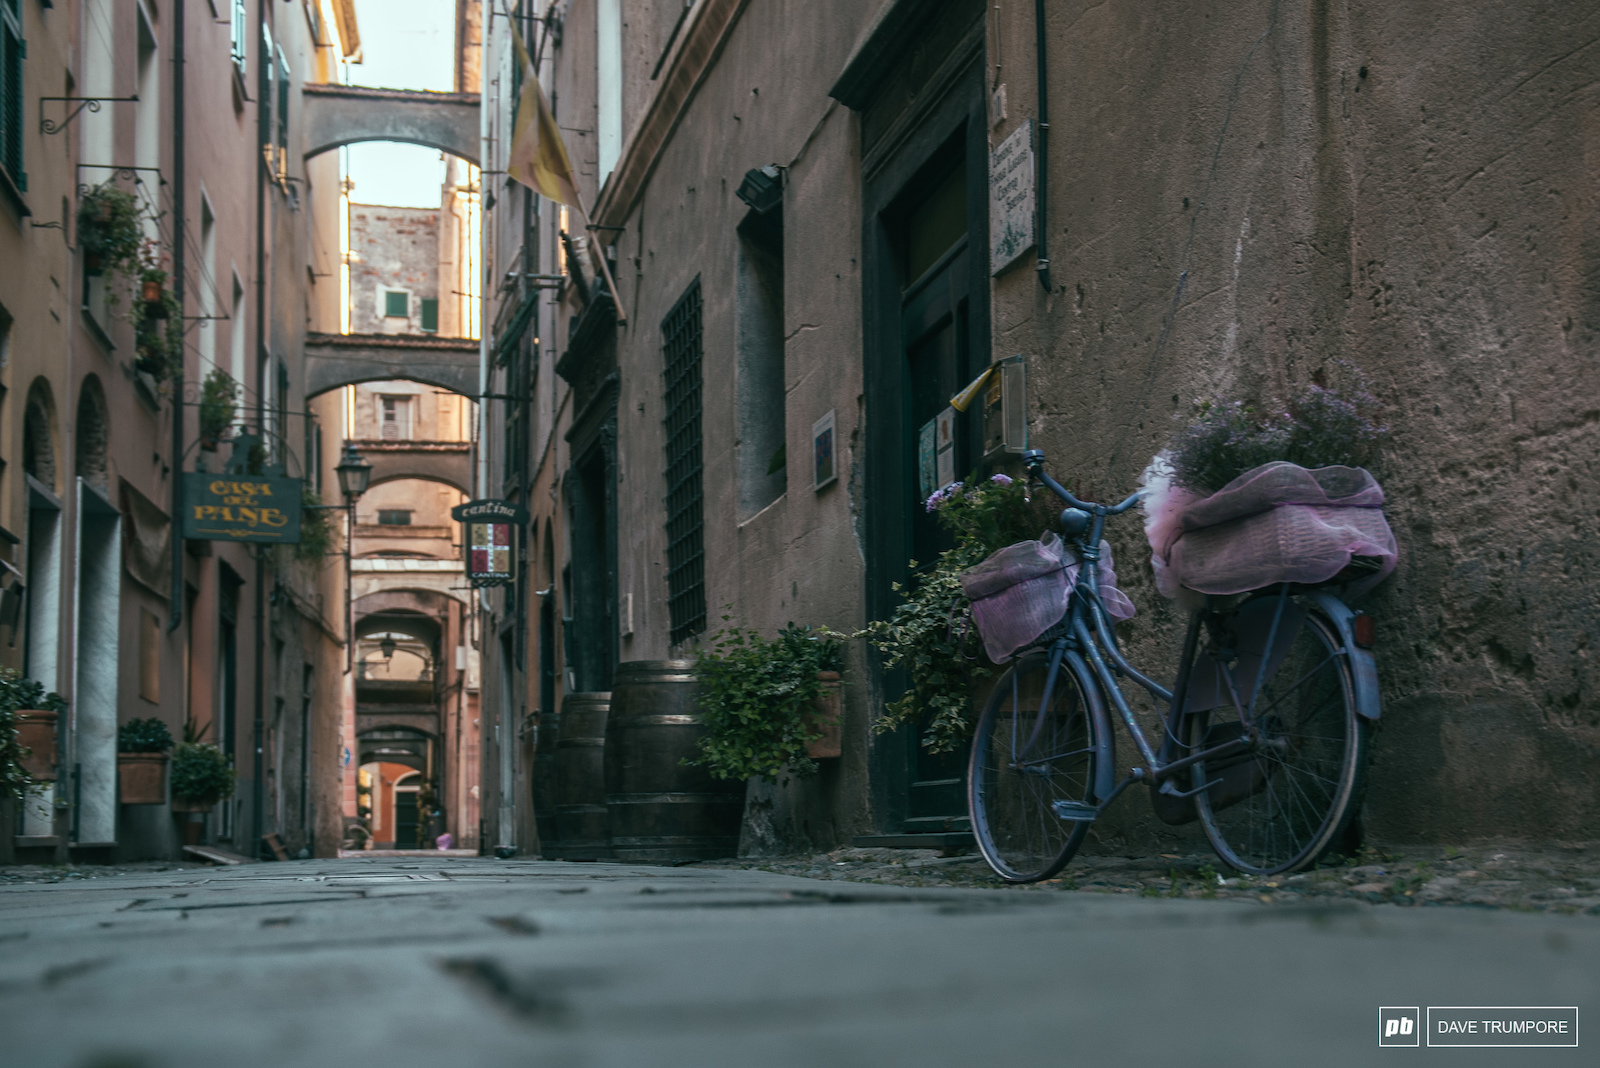 Arches alleys and bicycles along side street in Finale Ligure.